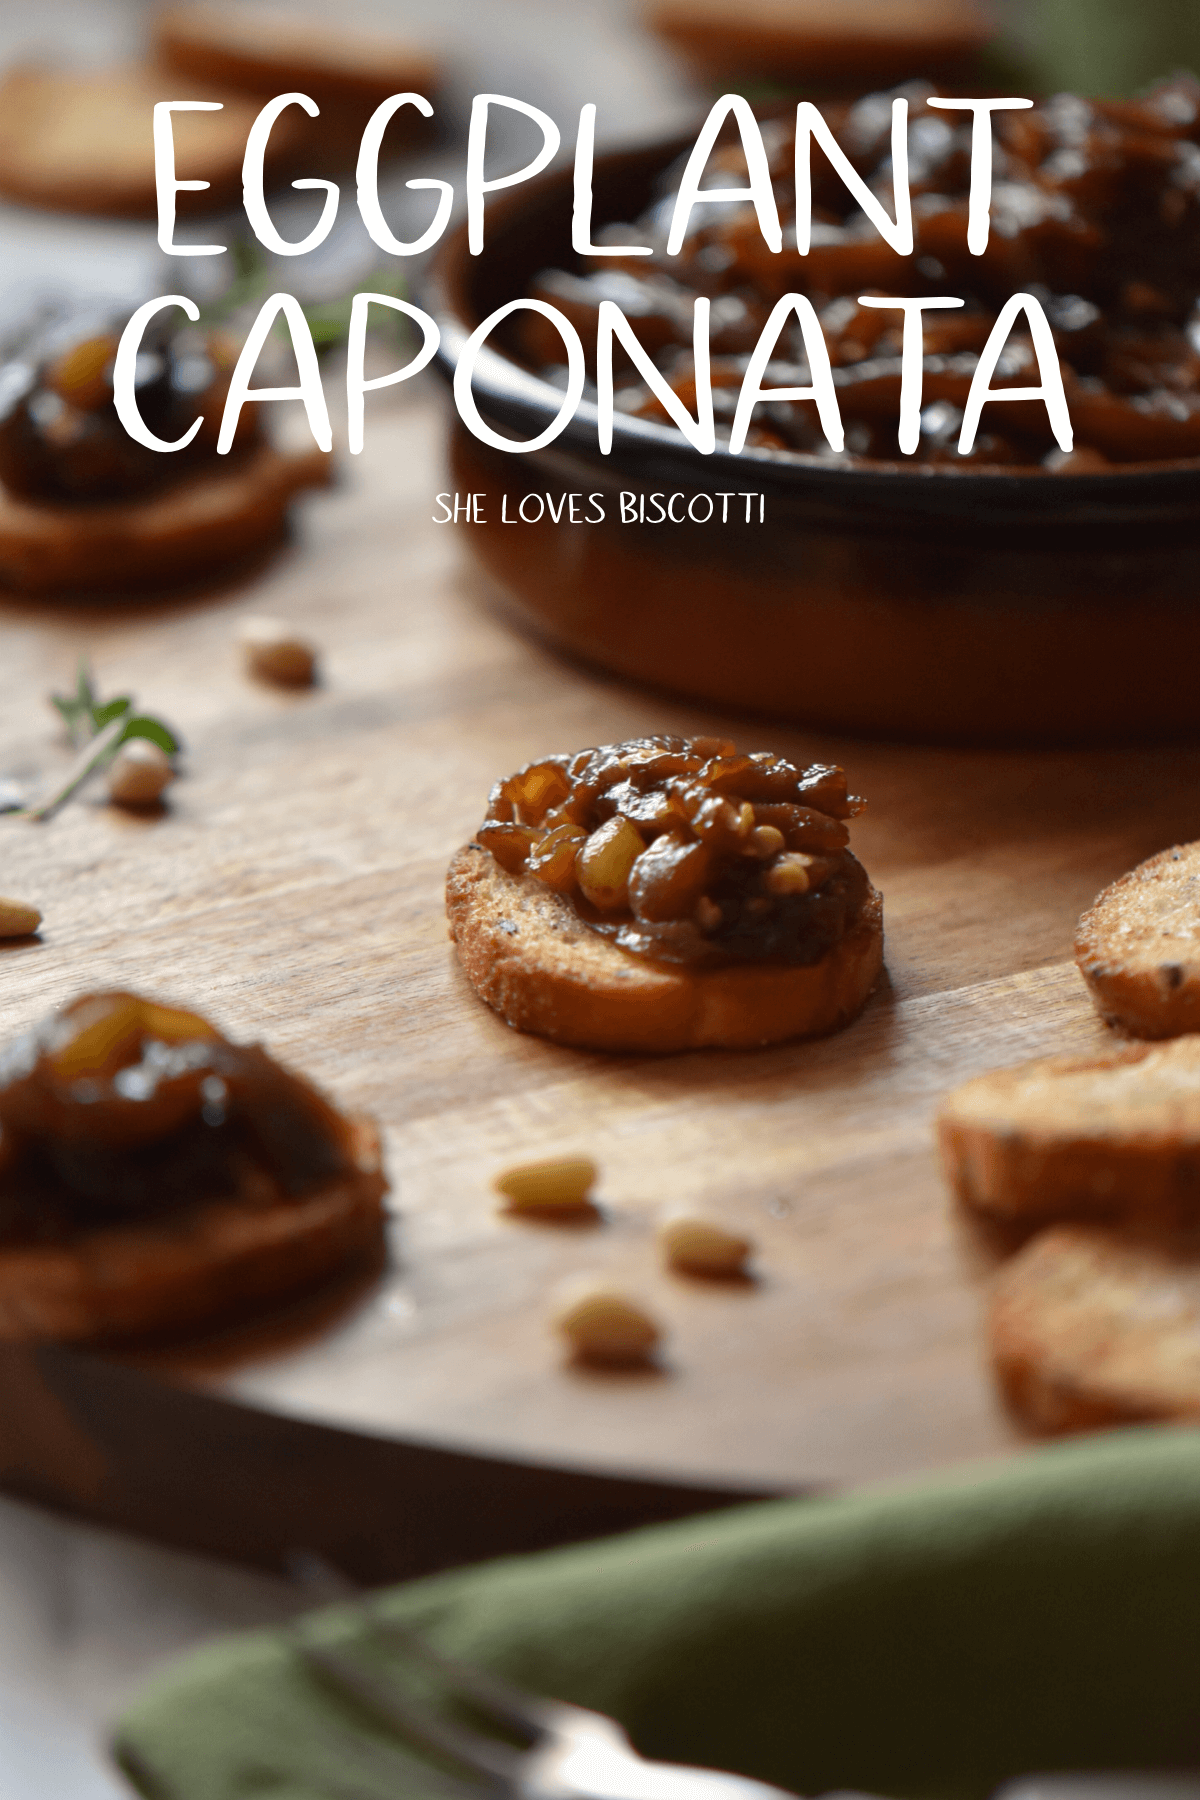 Eggplant Caponata is so easy to make and is just perfect for your appetizer board. #shelovesbiscotti #caponata #eggplantcaponata #eggplant #easyappetizer #appetizers #pinenuts #roastedvegetables